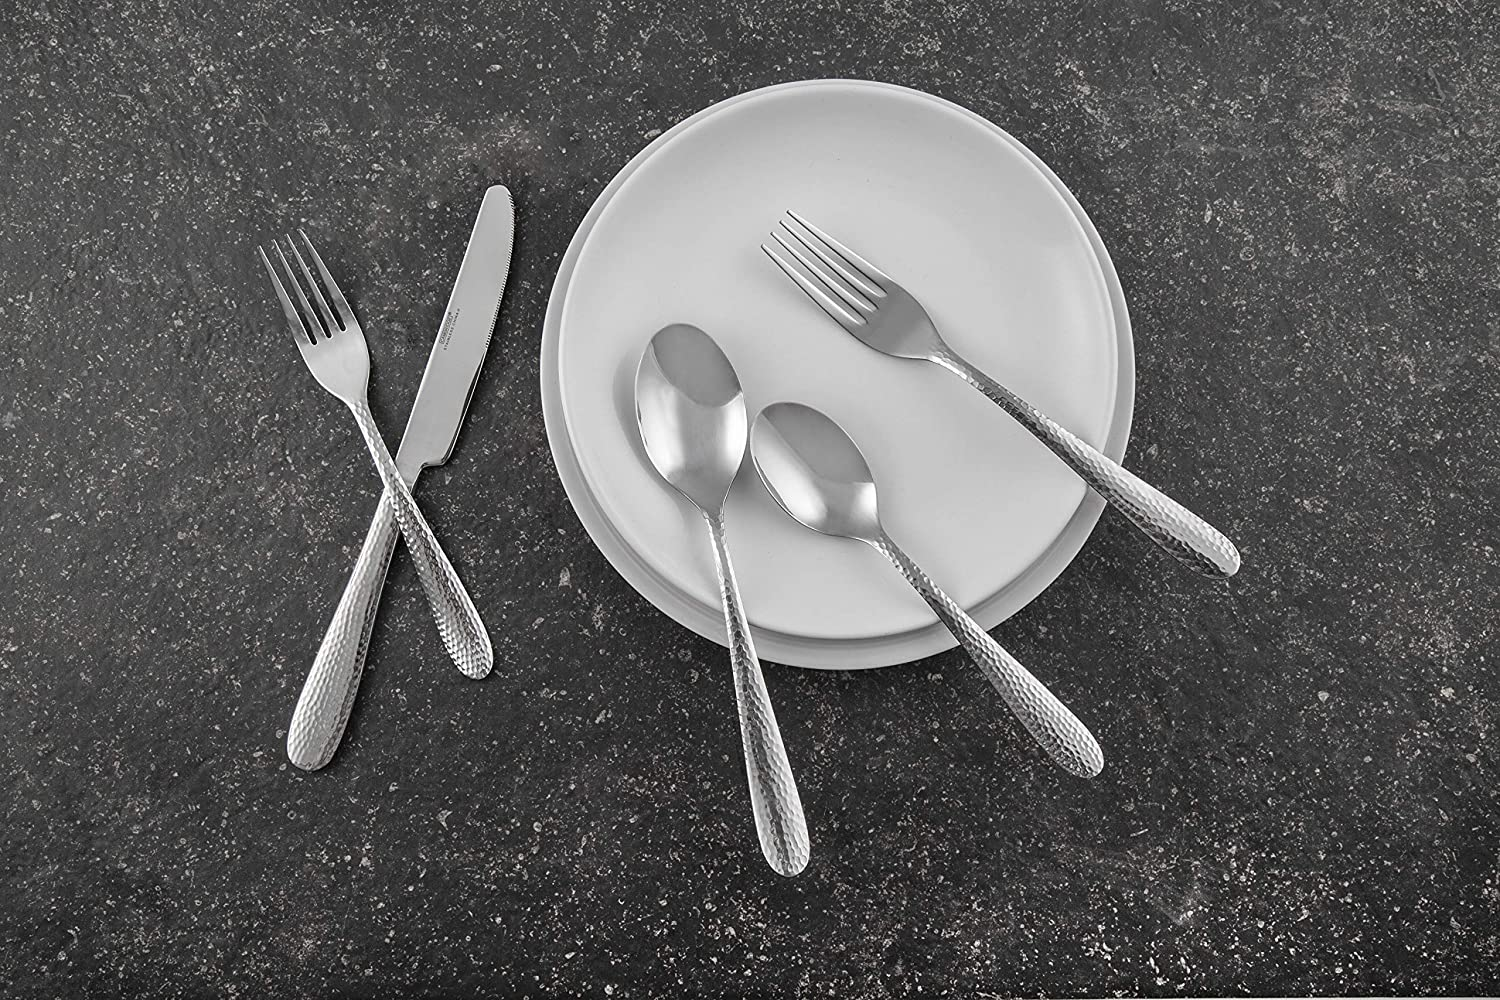 Includes Forks//Spoons//Knives Cambridge Silversmiths Soiree Mirror 30-Piece Flatware Silverware Set Service for 6